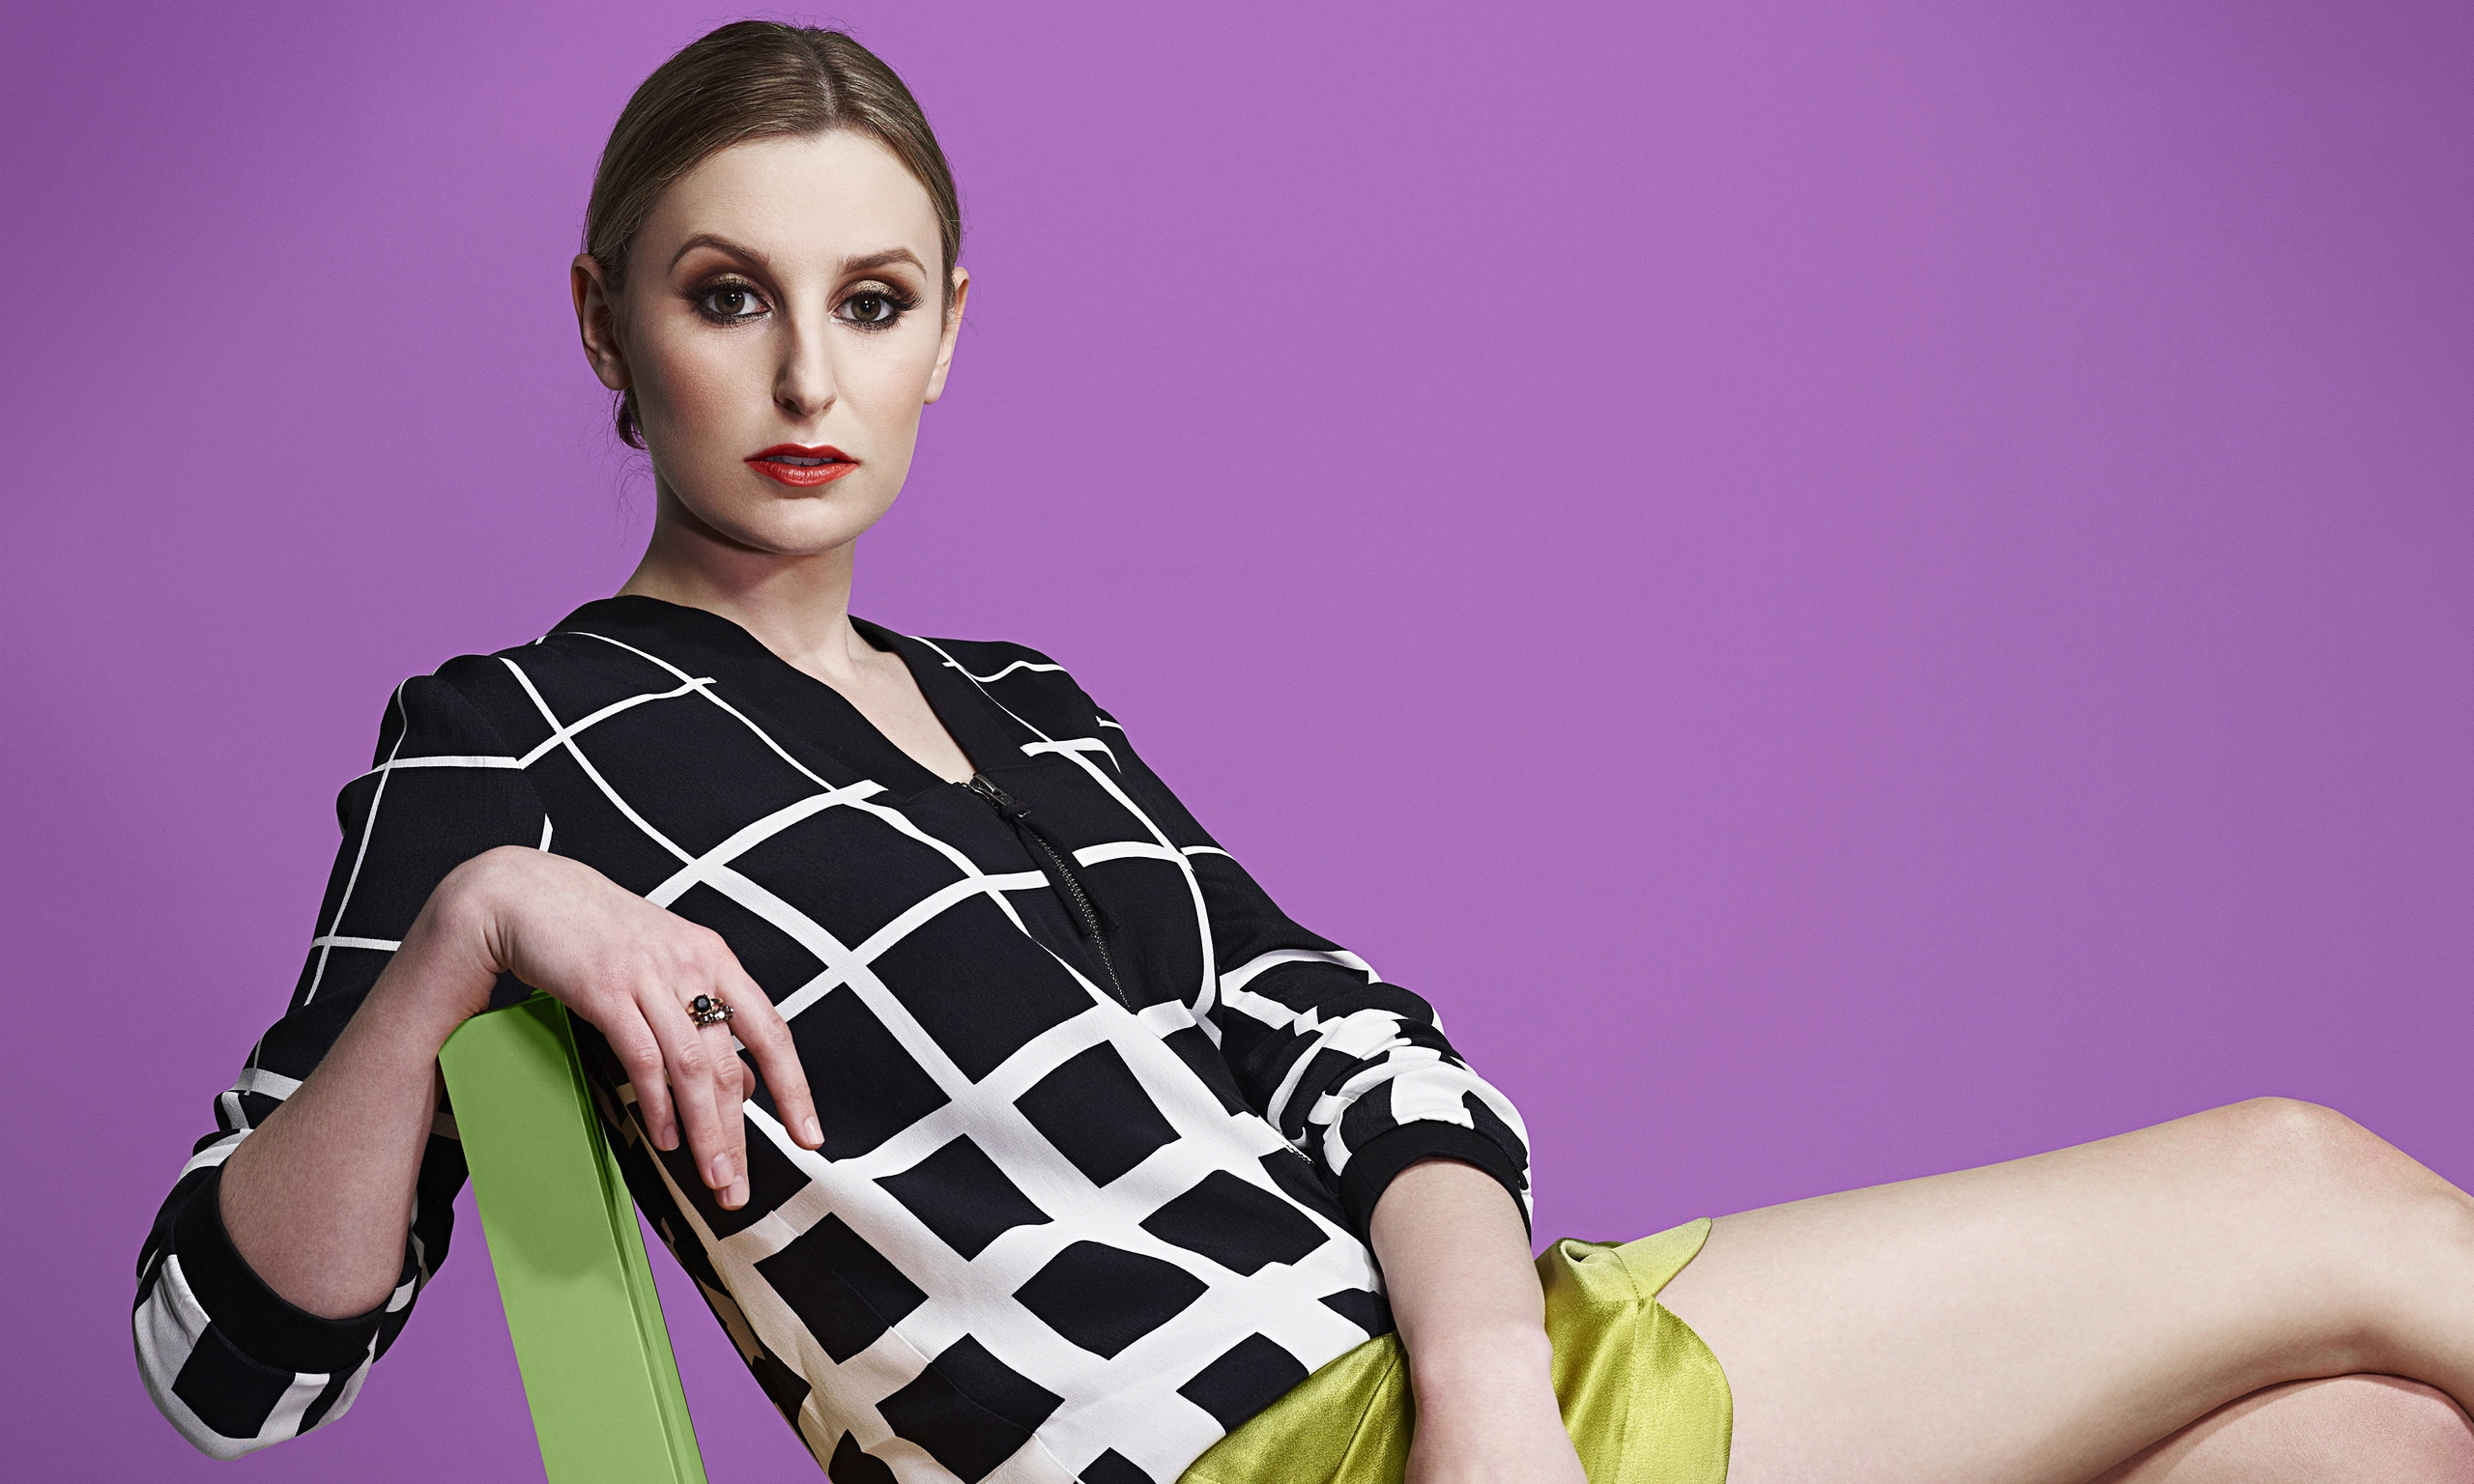 laura carmichael wallpaper background 57990